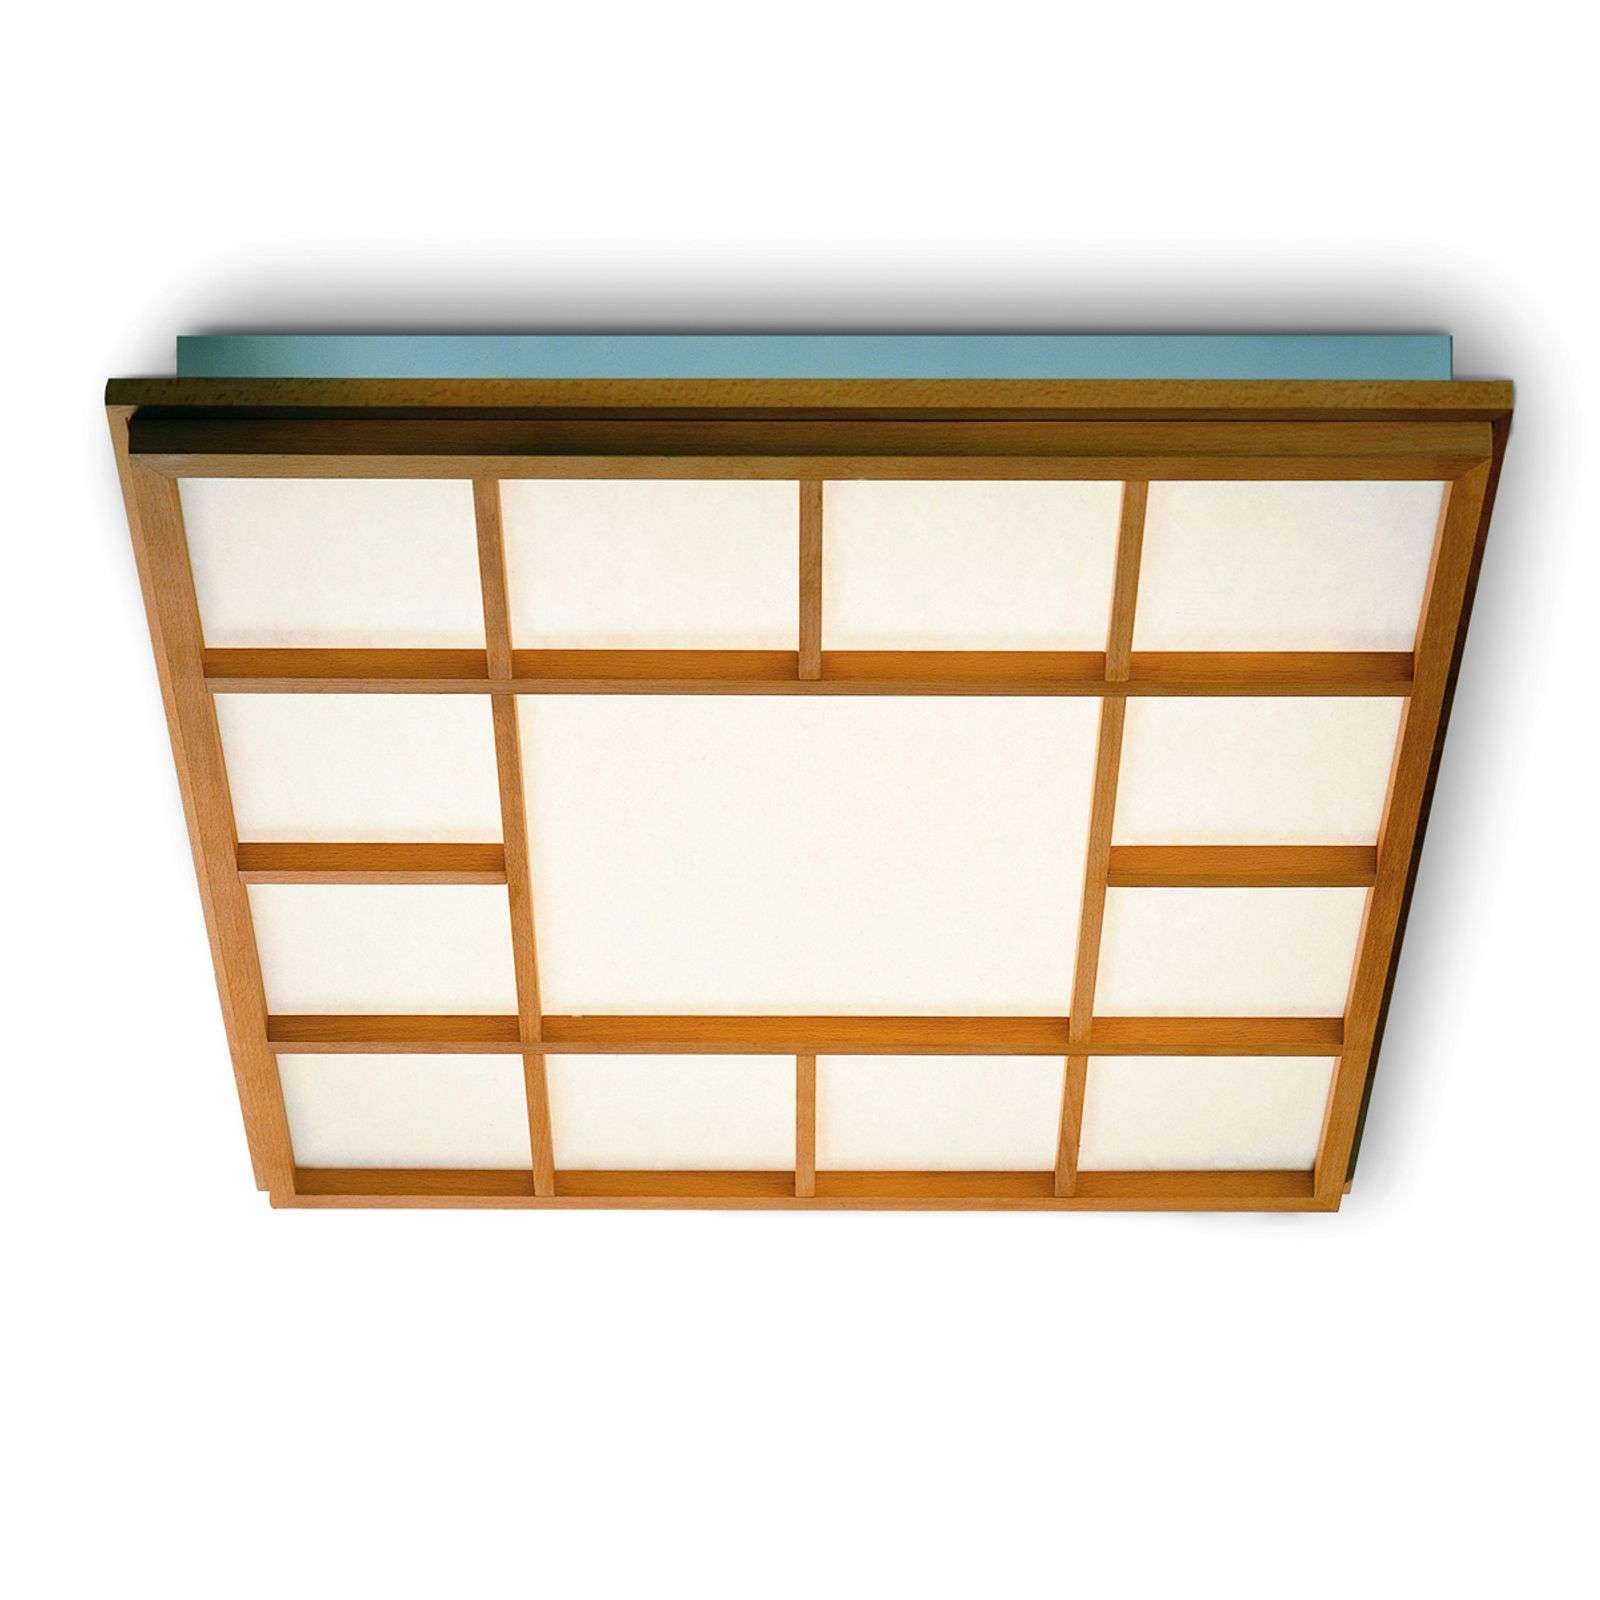 Square LED ceiling light Kyoto 13, beech